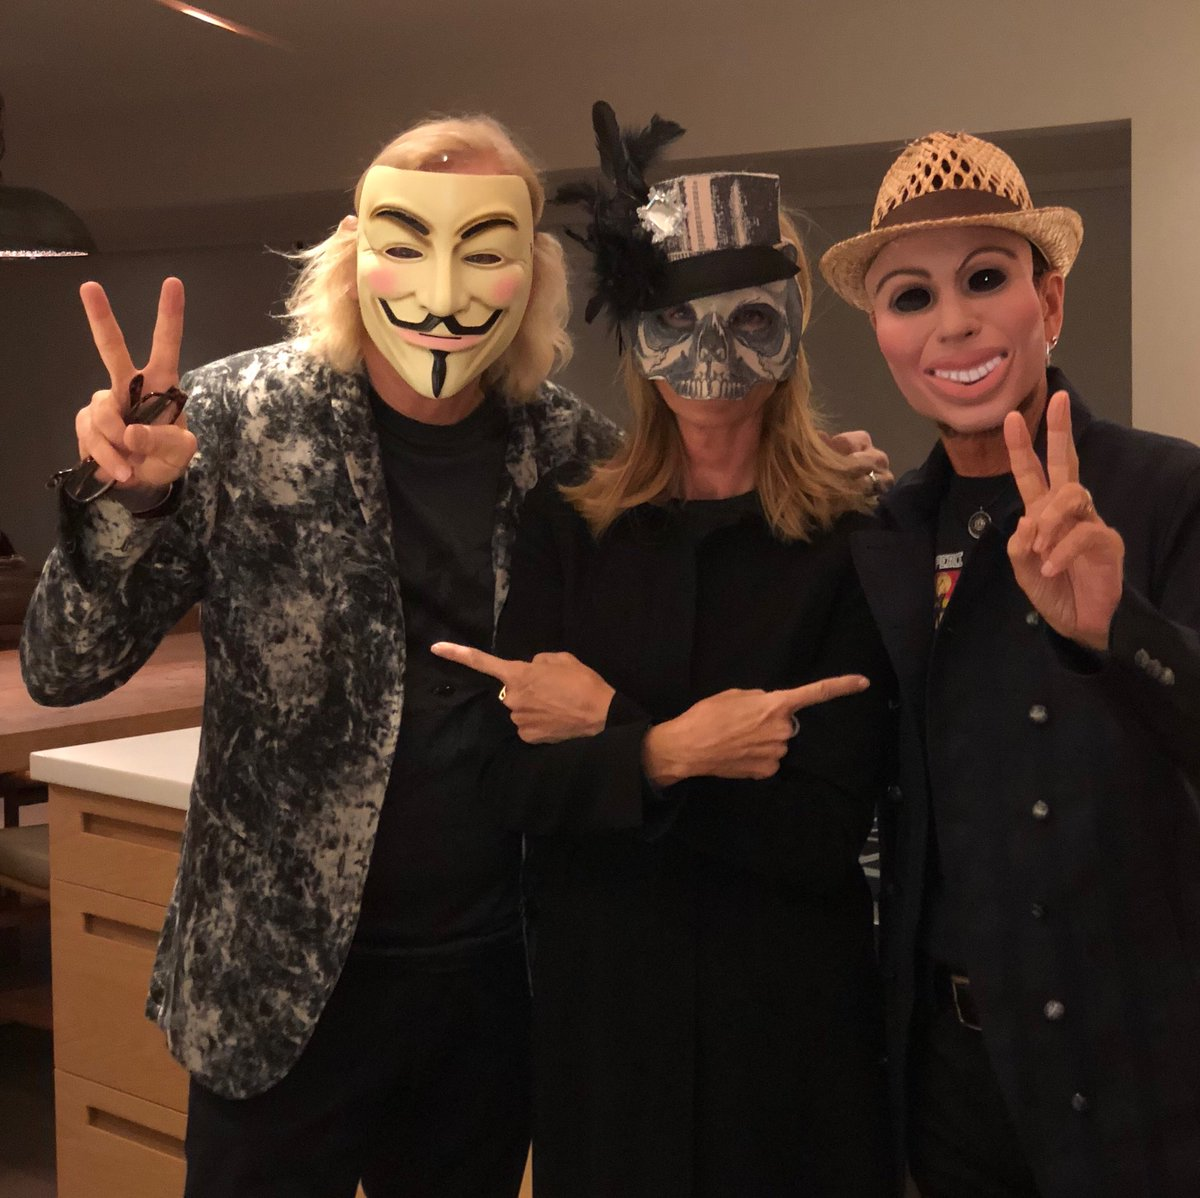 The three musketeers peace and love 😎✌️🌟❤️🎵🎈🎶💖🥦🦏🐘💕🎼☮️